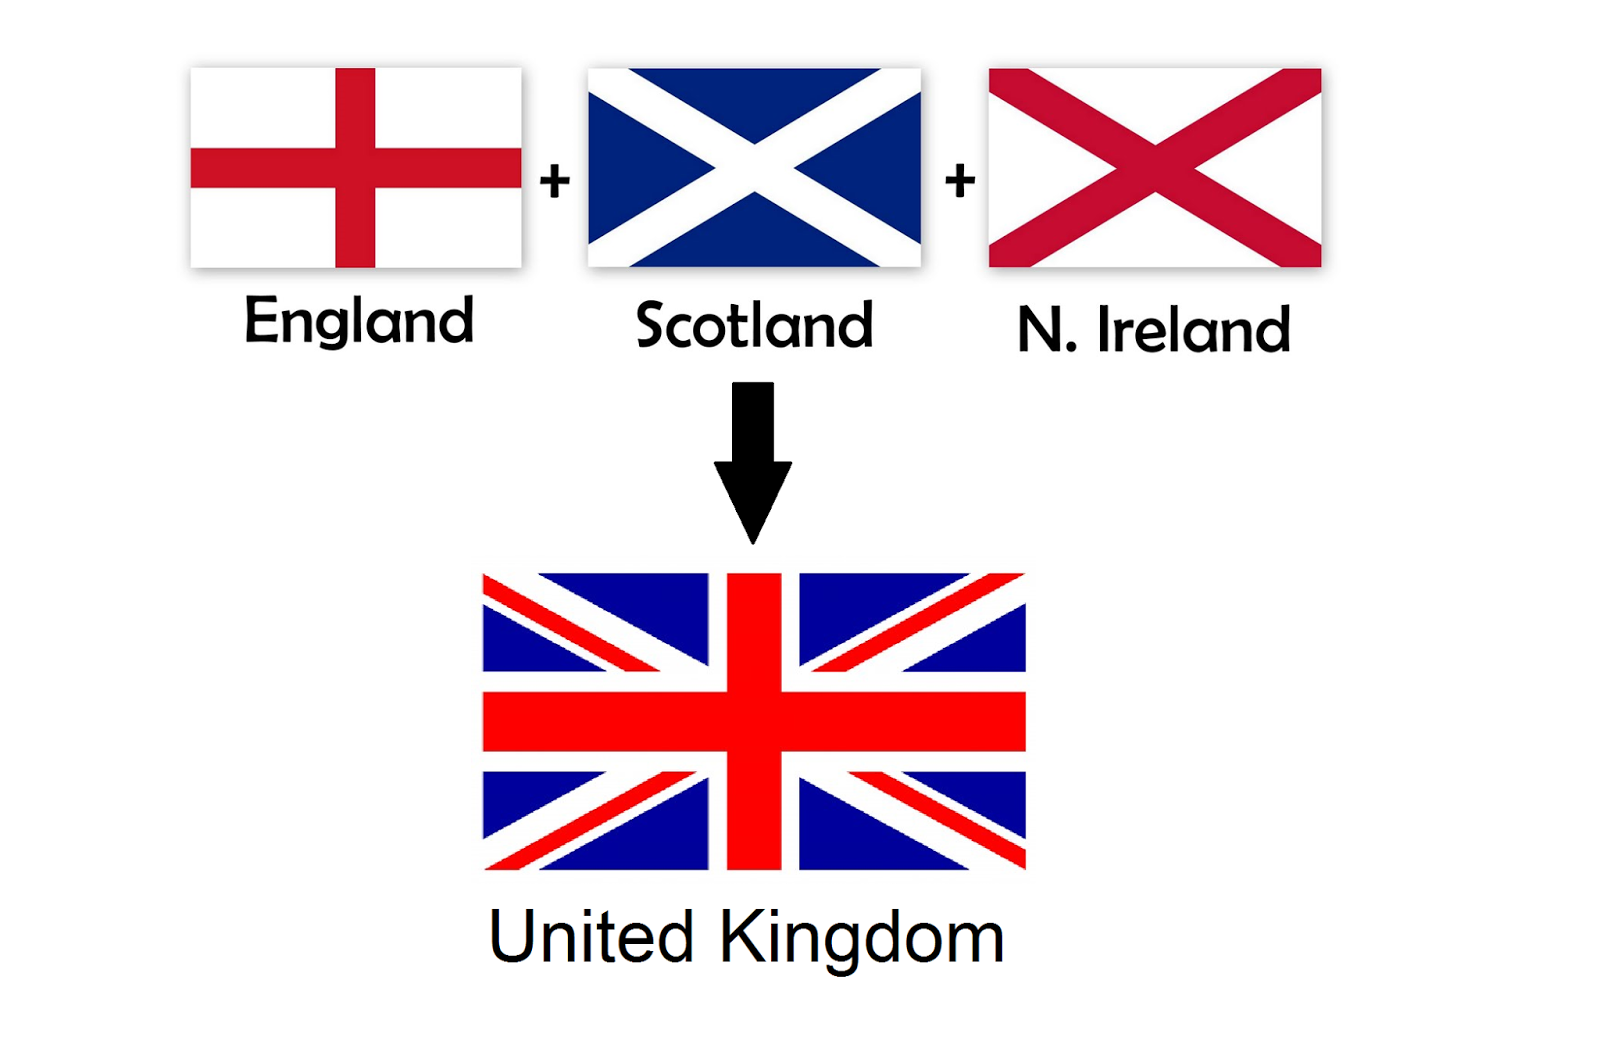 UK flag called 'Union Jack' only when flown on a ship snopes.com